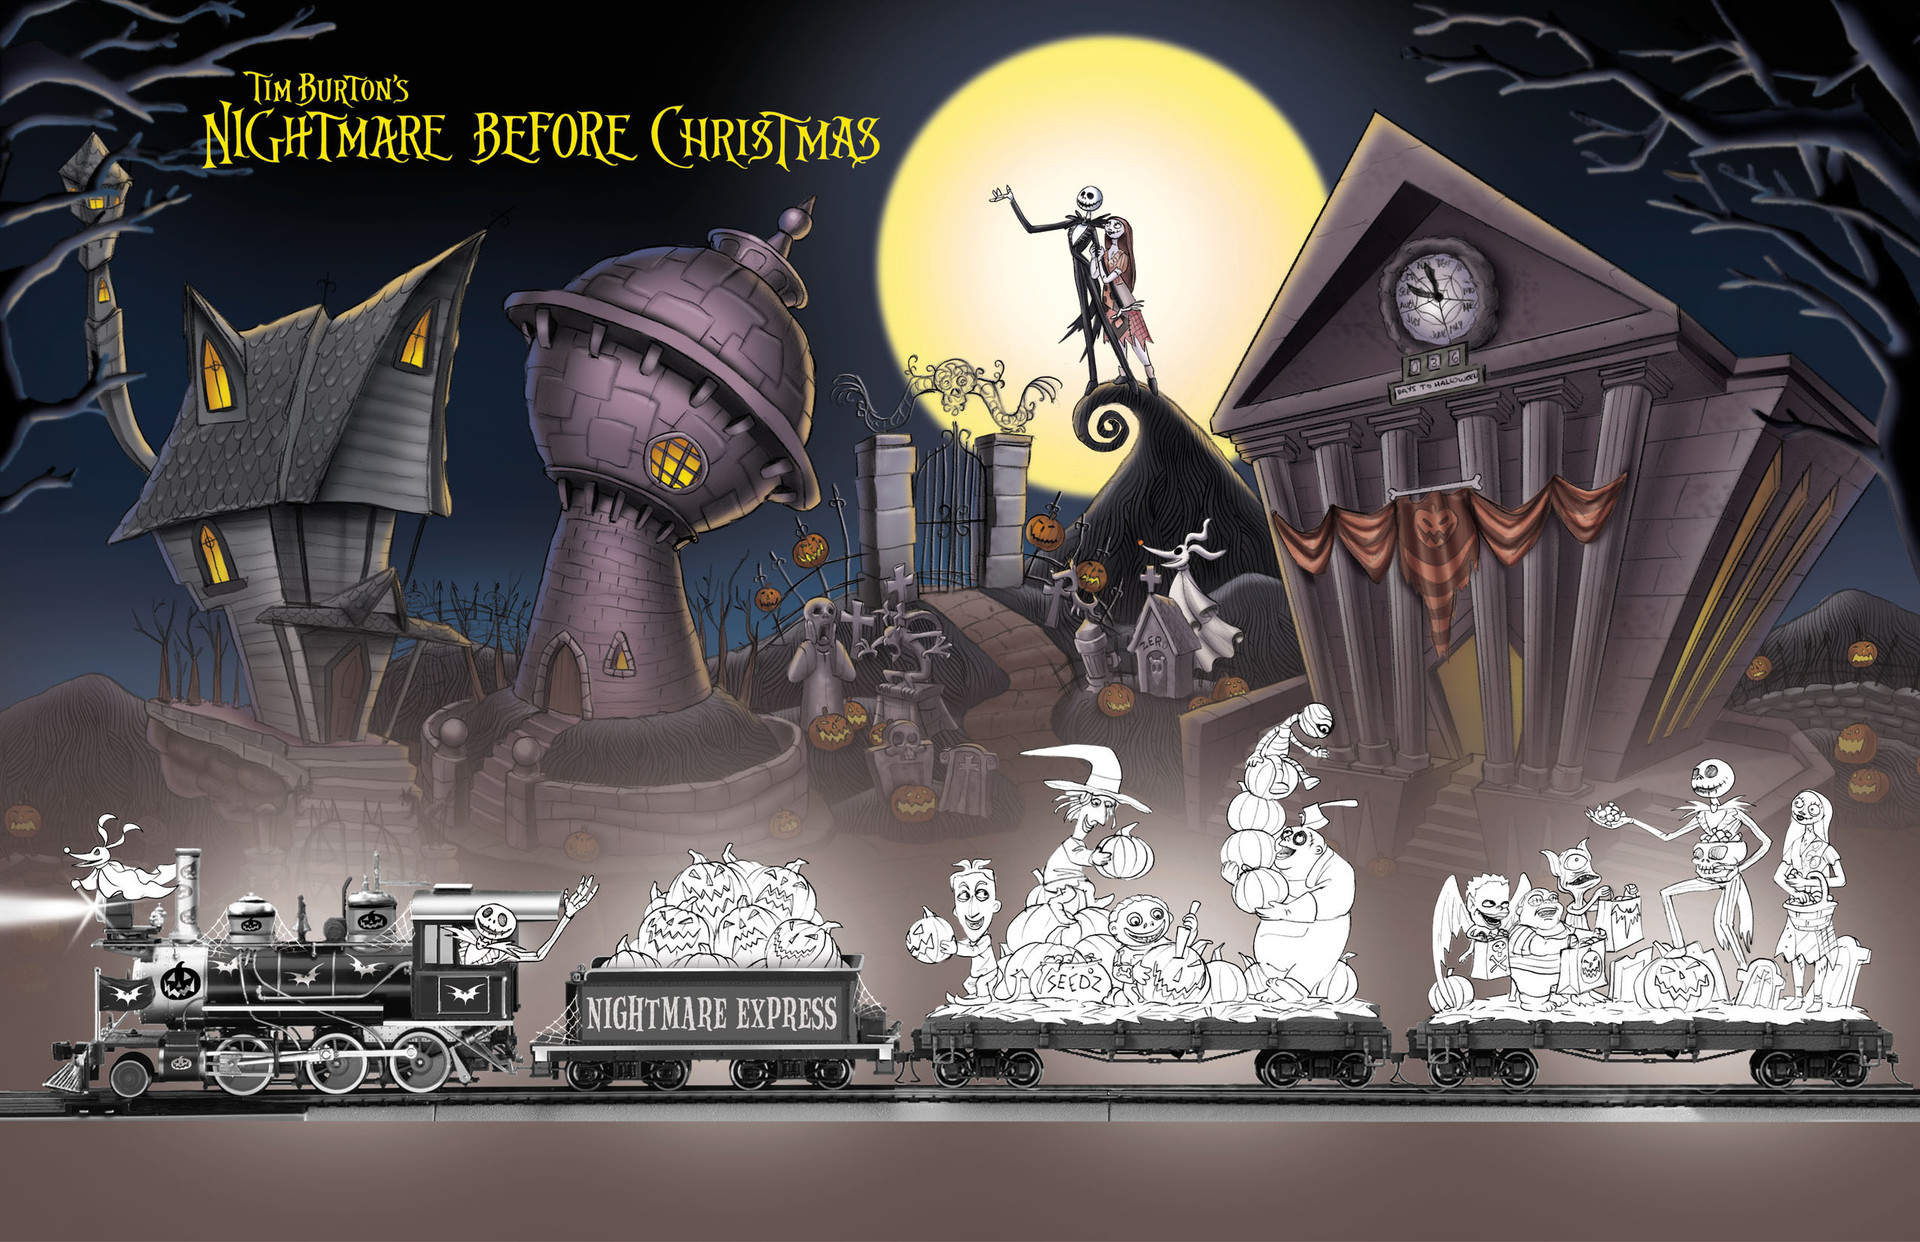 ArtStation - Nightmare Before Christmas Electric Train, Joe Viego